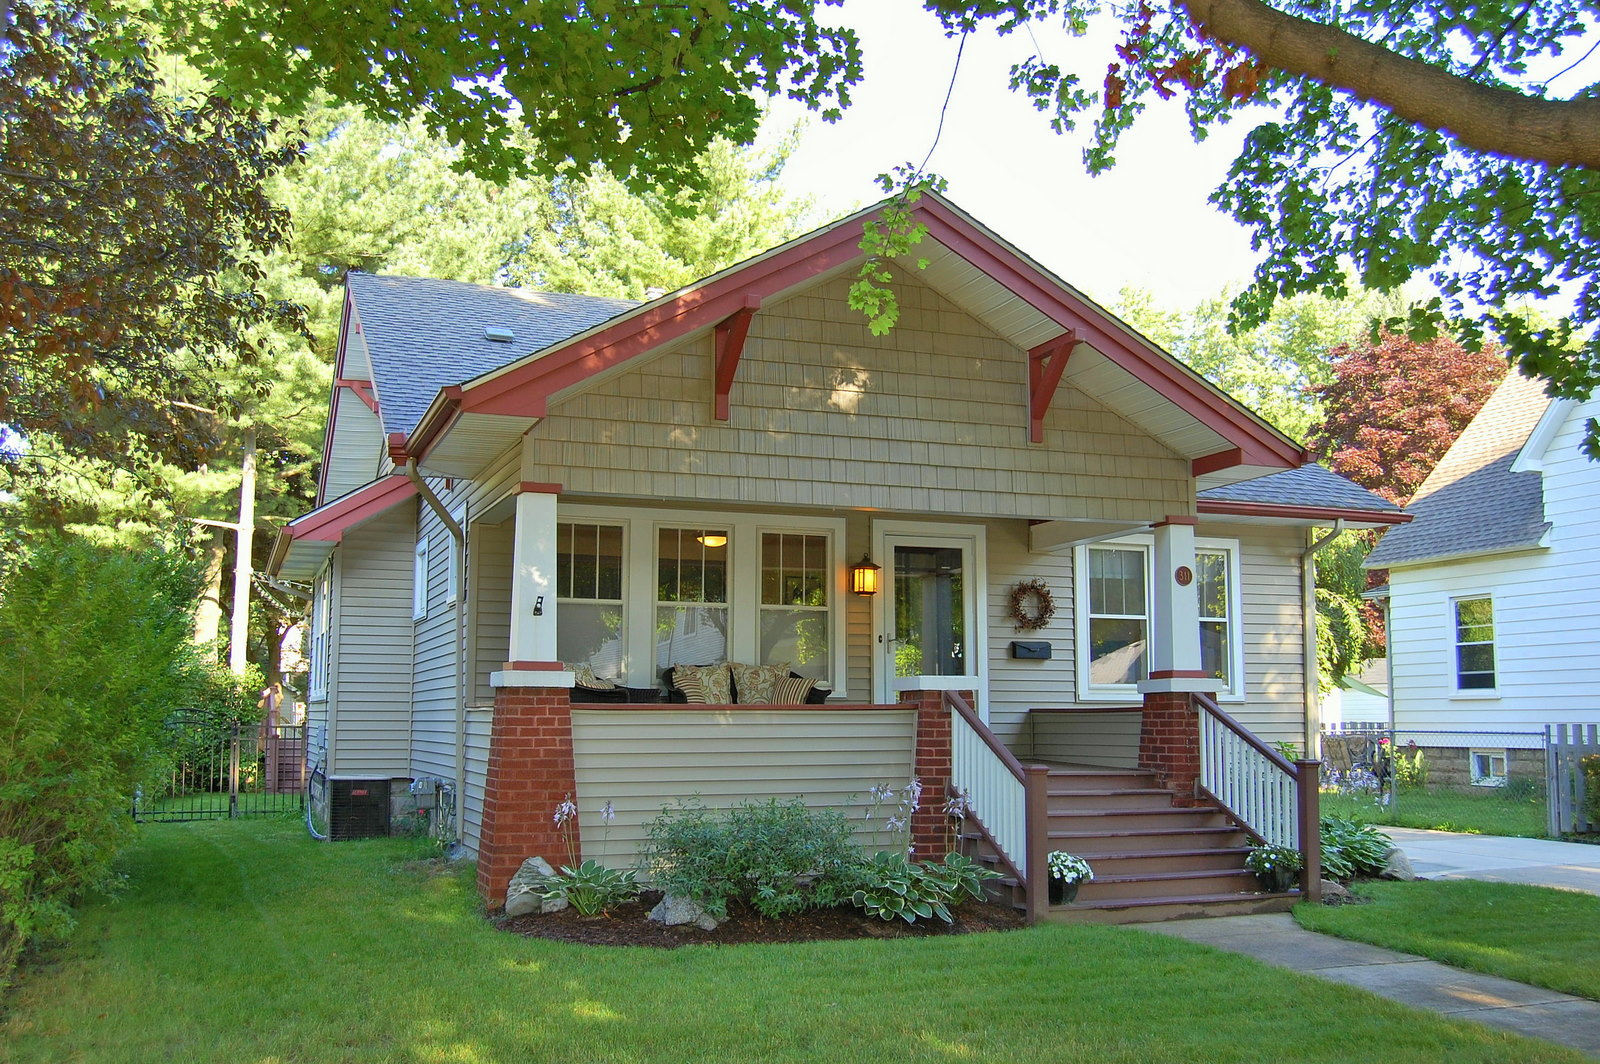 Sold 311 n harvey st fully updated craftsman style for New craftsman homes for sale